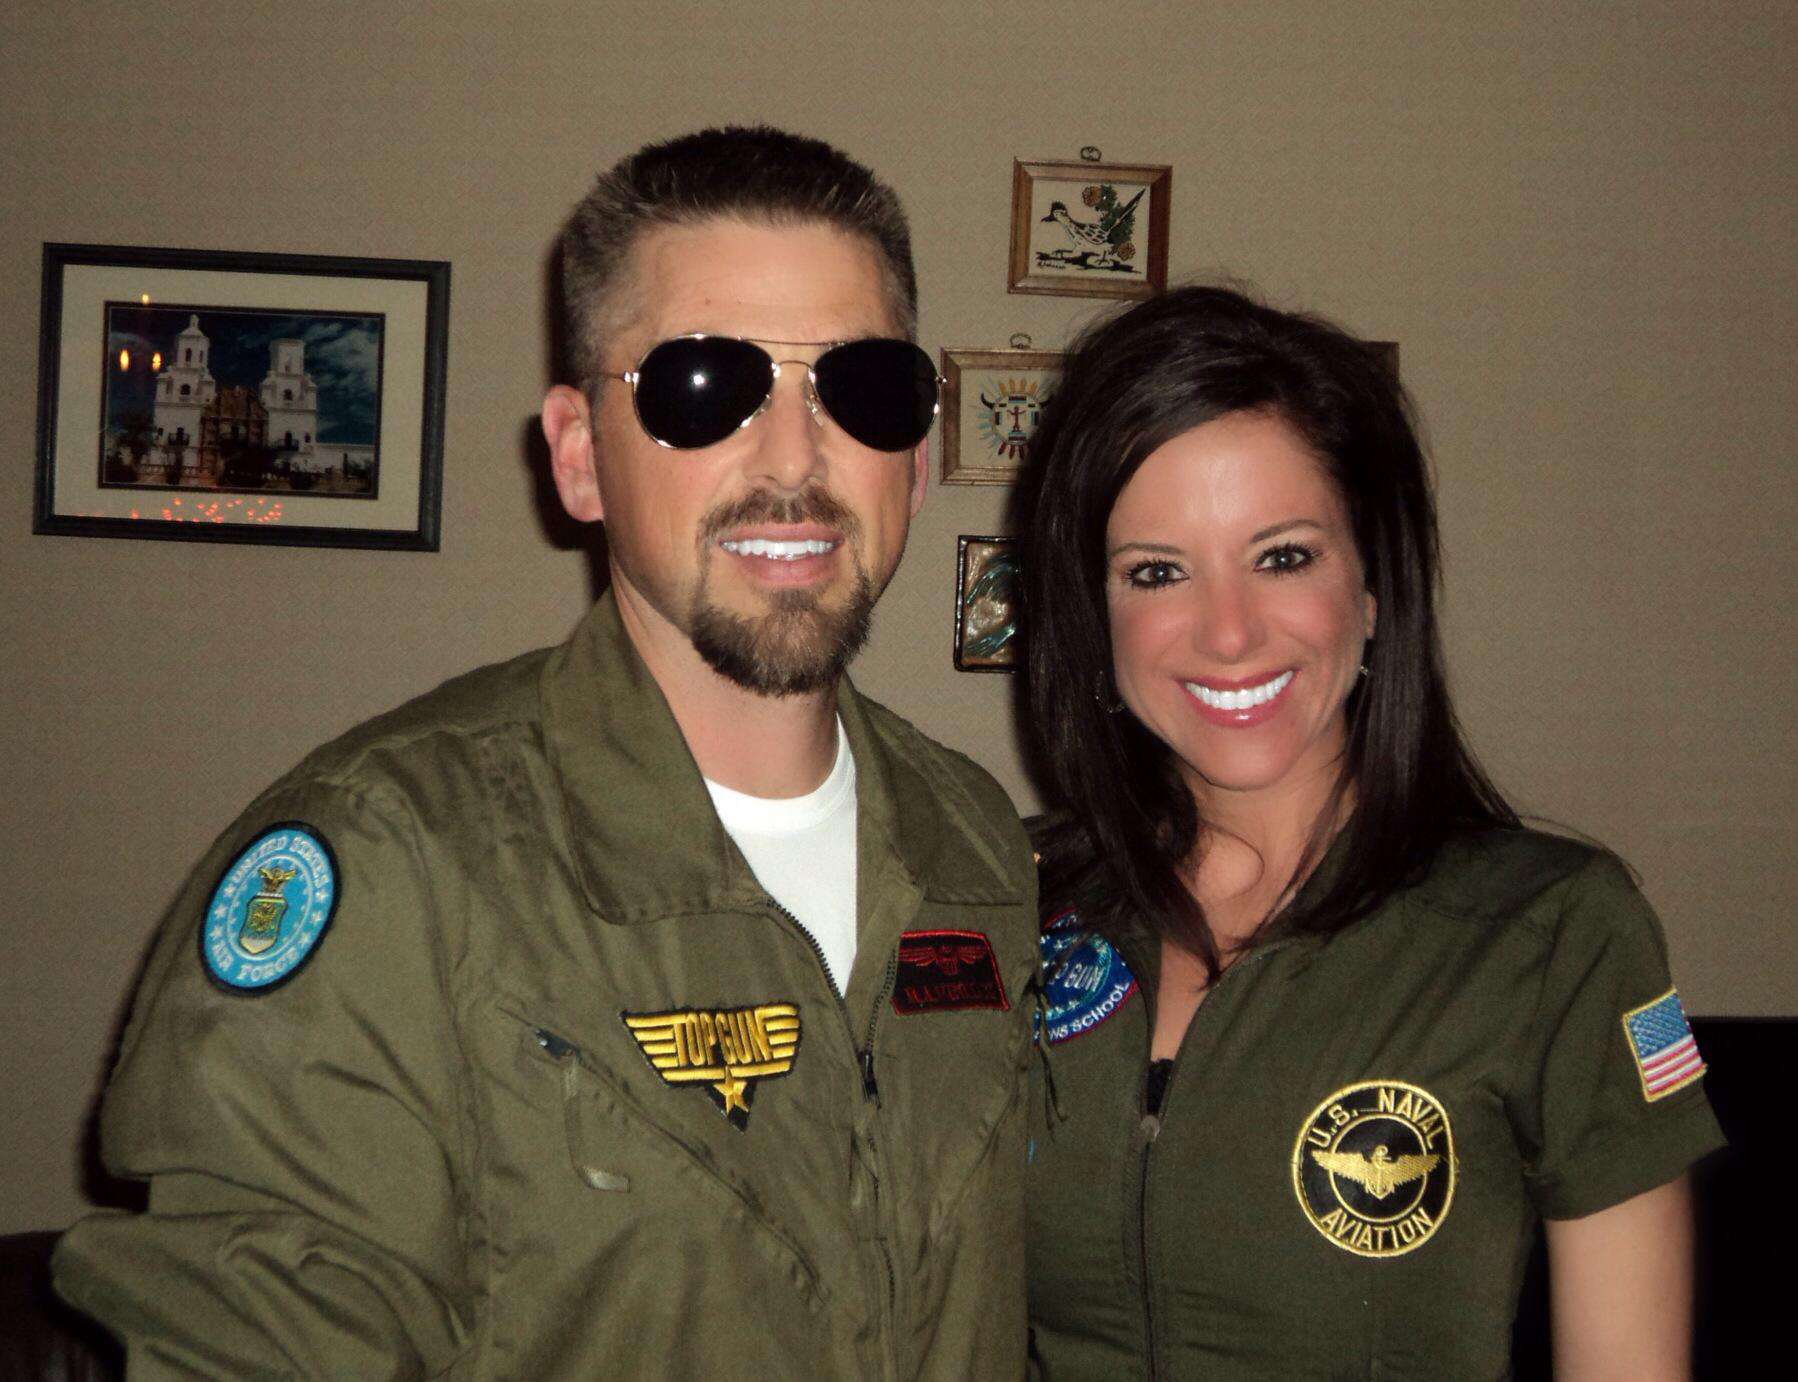 Top Gun Halloween